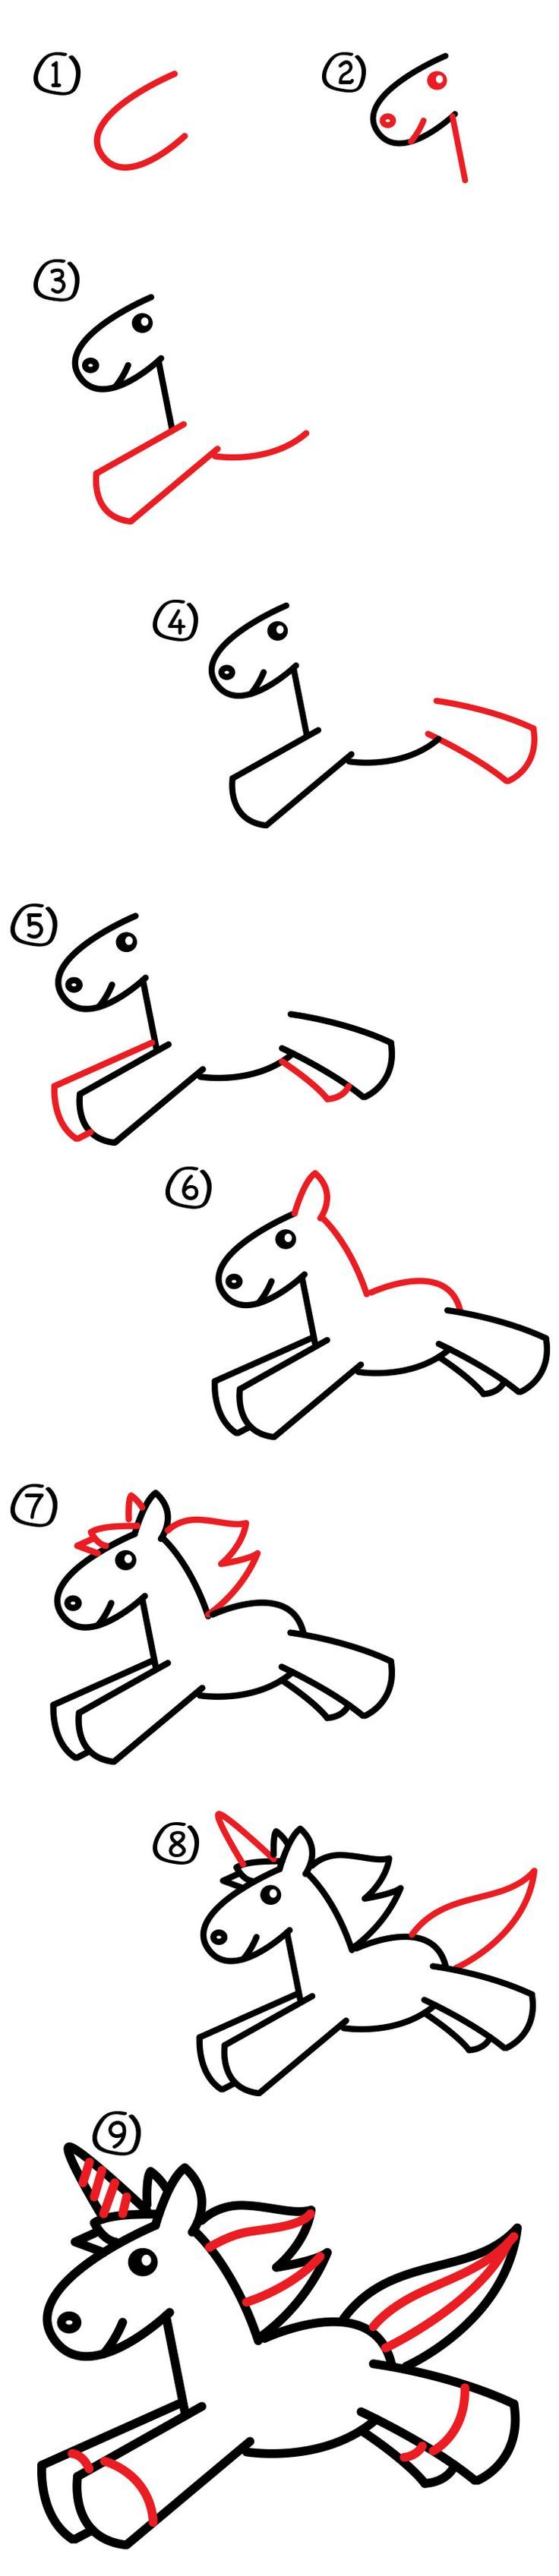 how to draw a unicorn for kids drawing how to step. Black Bedroom Furniture Sets. Home Design Ideas